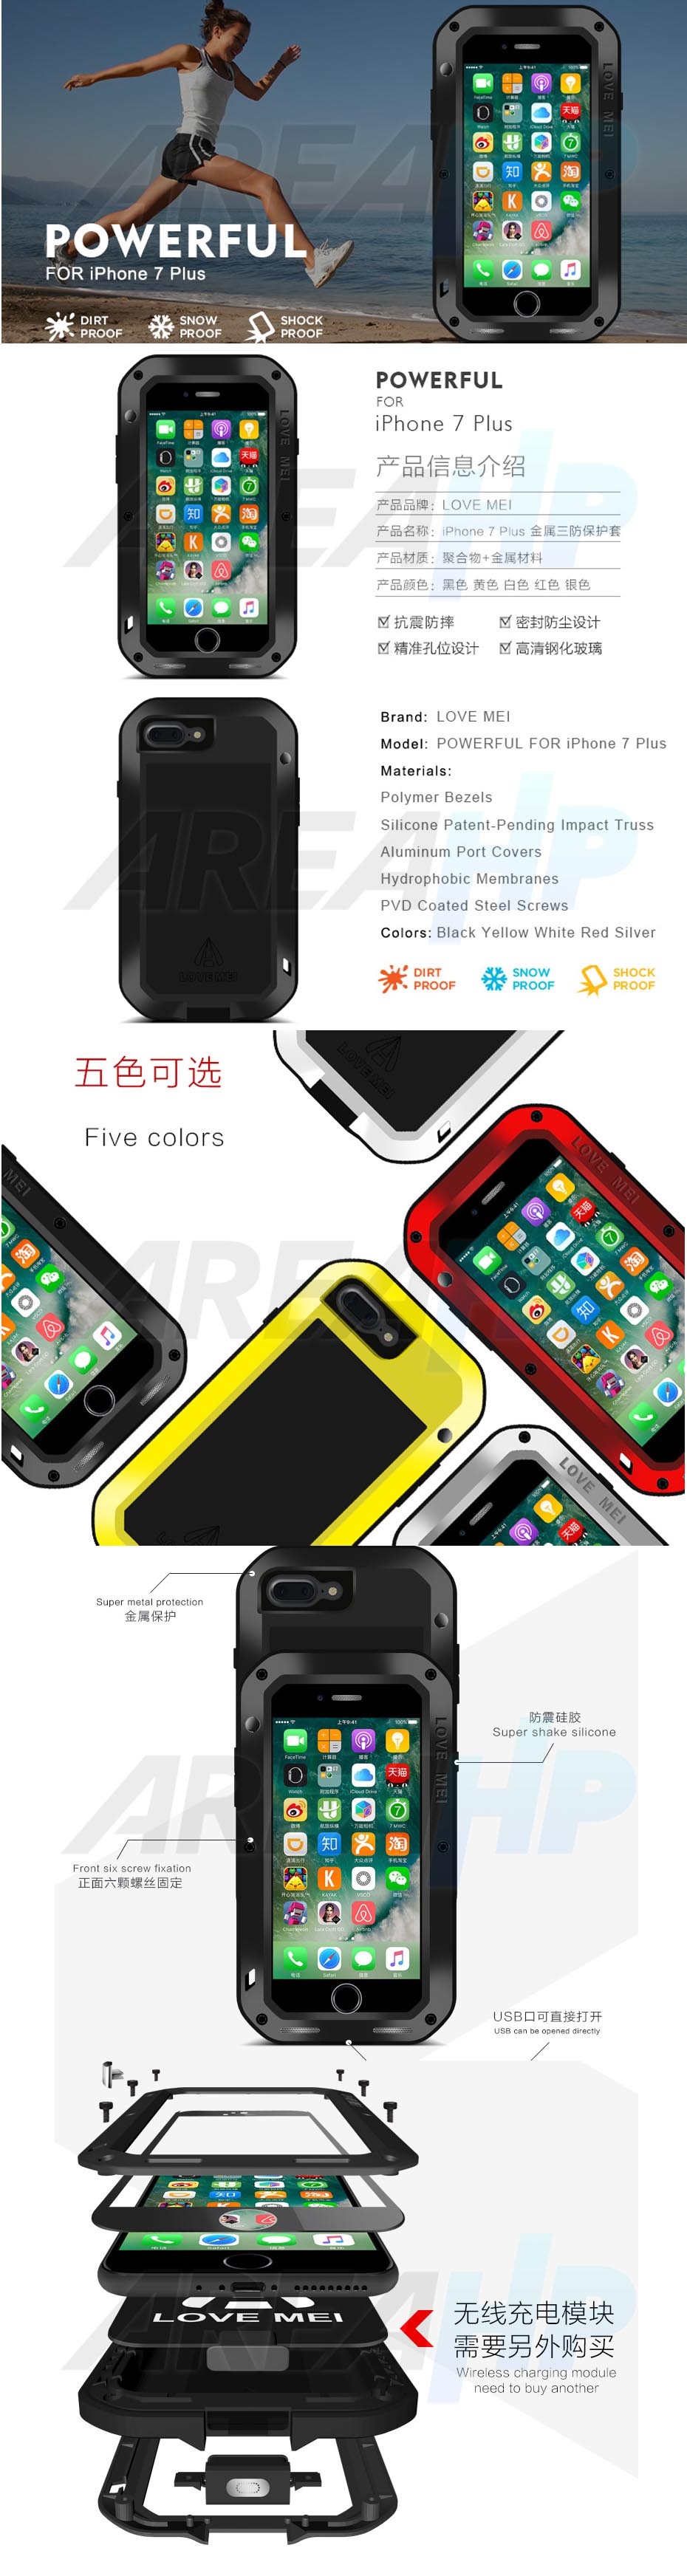 love-mei-powerful-case-for-iphone-7-plus-overview